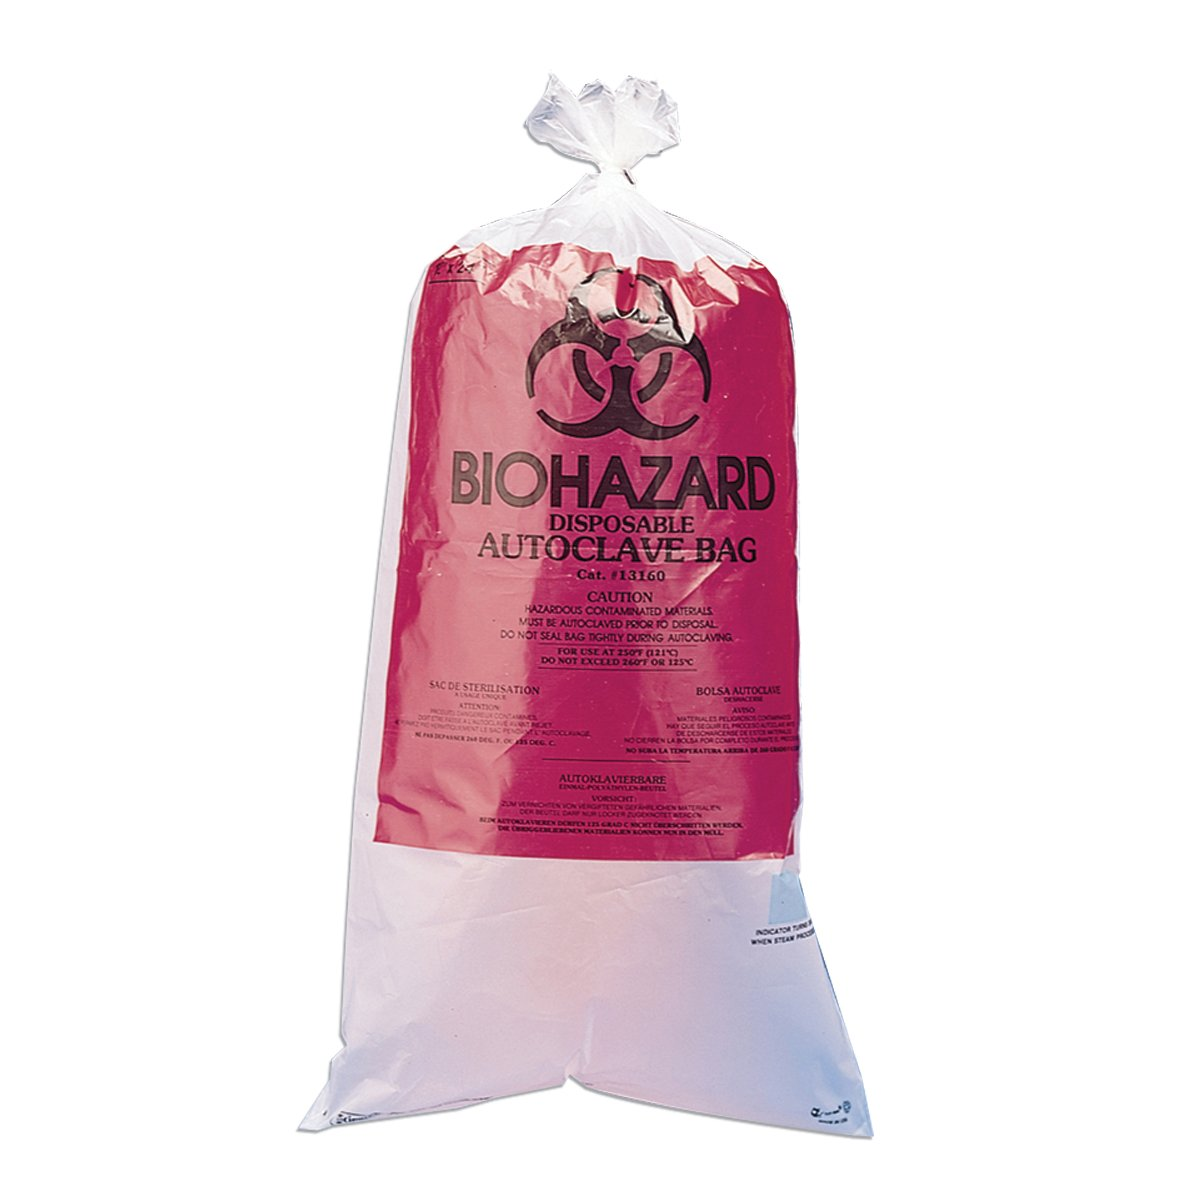 BioHazard Disposal Bags with Warning Label and Sterilization Indicator, Polypropylene, 15-20 Gallon, 24 x 36 Inch Bag, 1.5mil Thick, 100 per Package